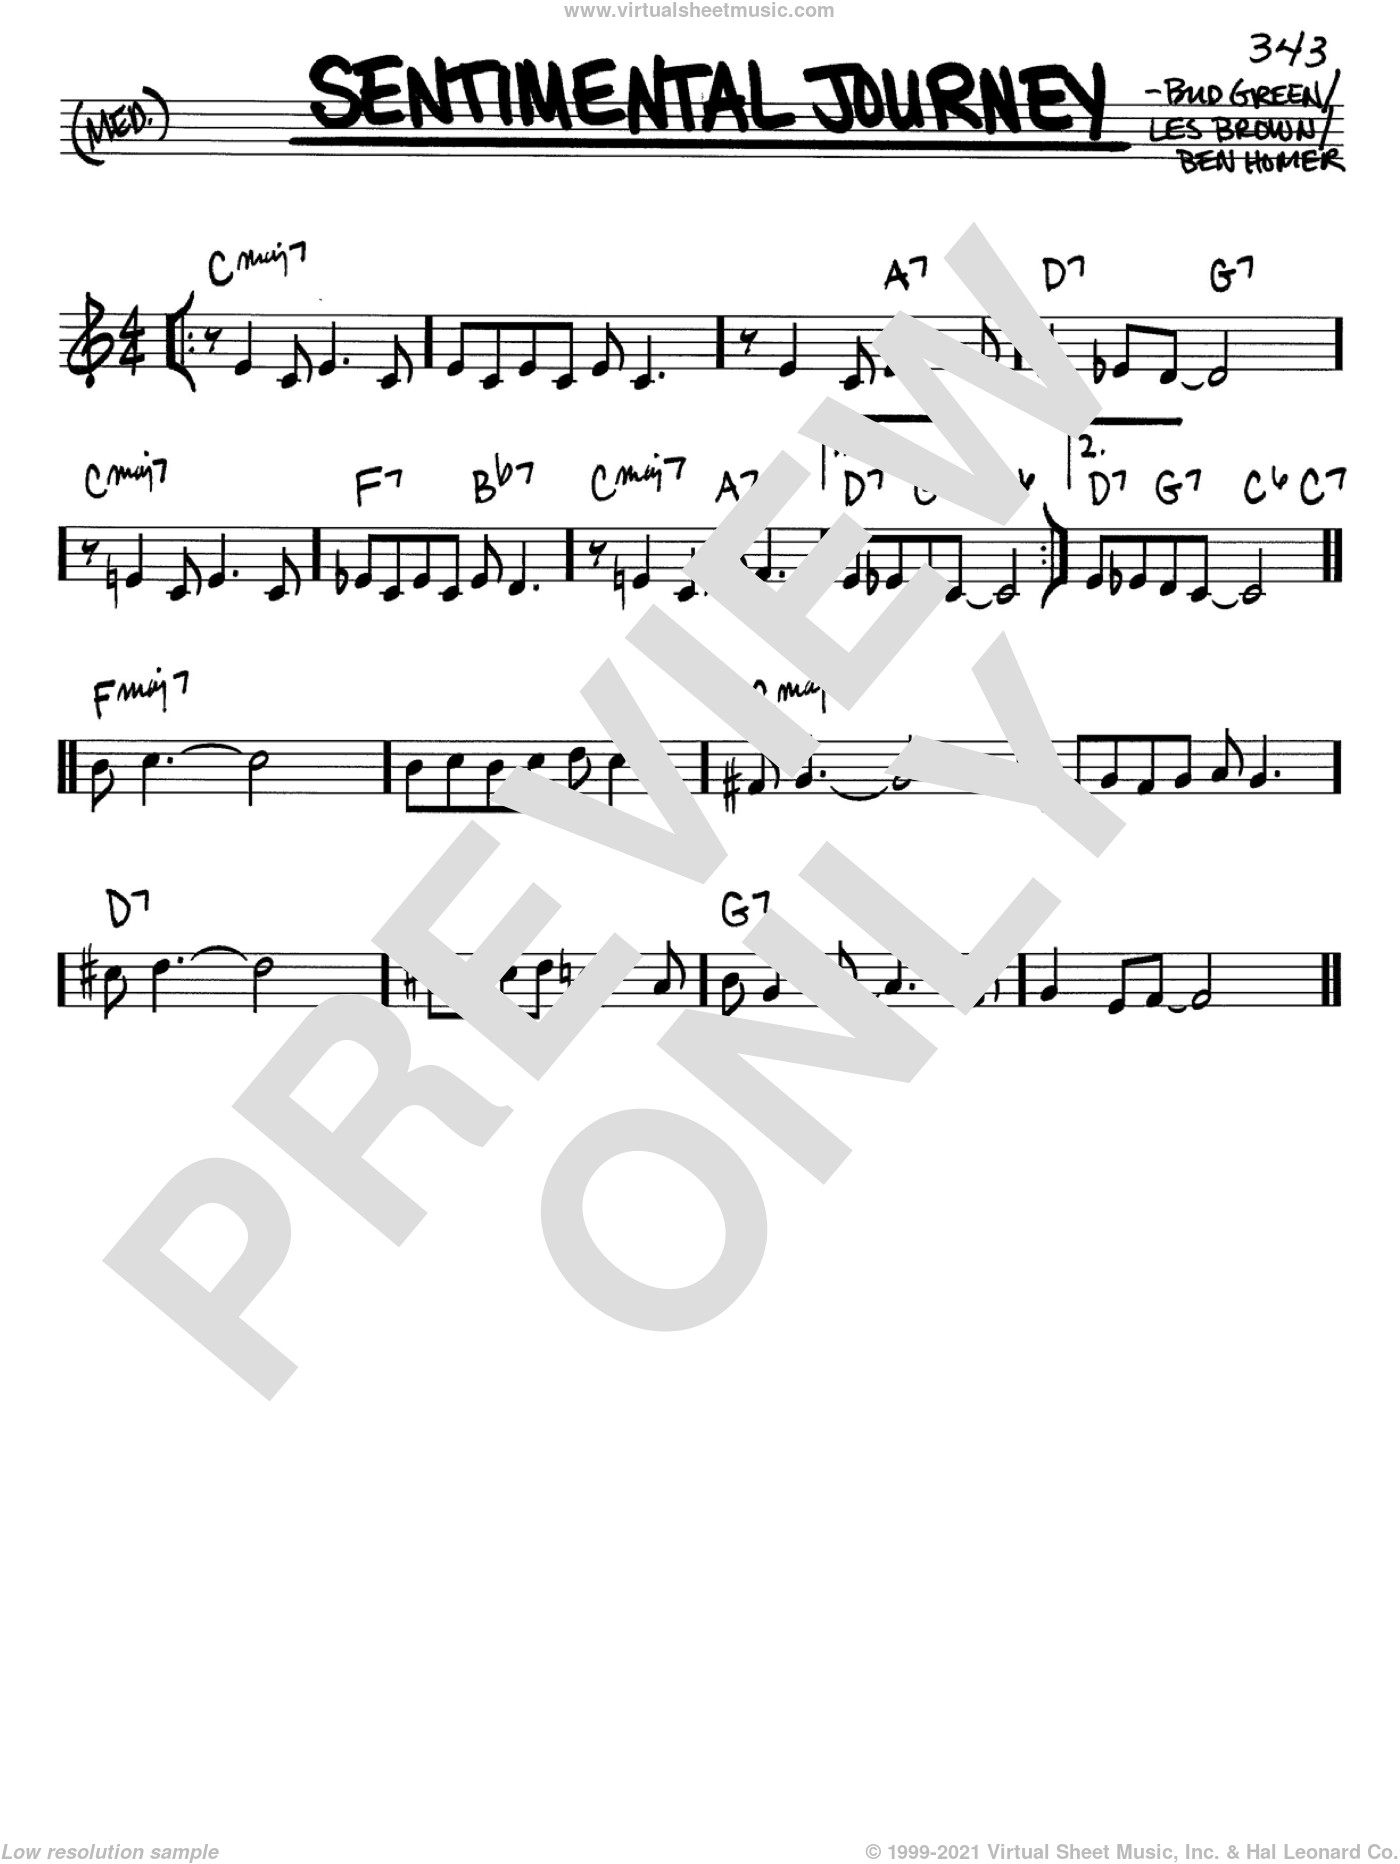 Sentimental Journey sheet music for voice and other instruments (in C) by Bud Green, Ben Homer and Les Brown, intermediate skill level